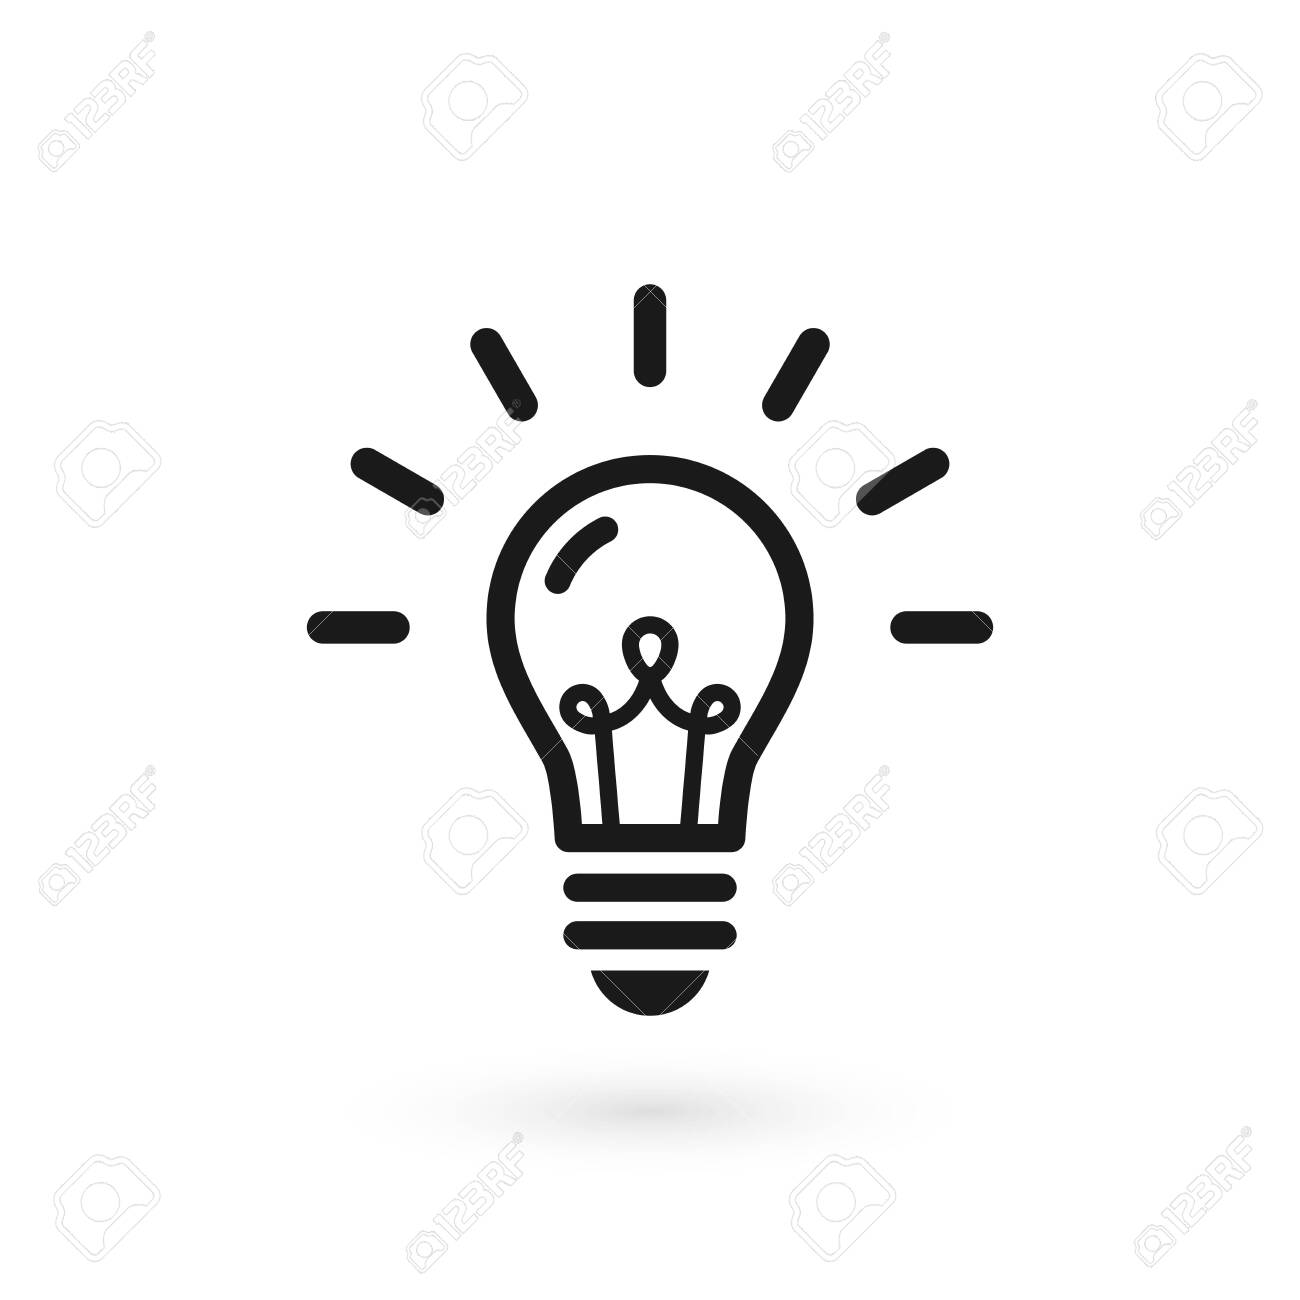 Black light bulb glowing icon. Isolated electric lamp on white background with filament and abstract rays. Vector illustration, flat design - 129337909